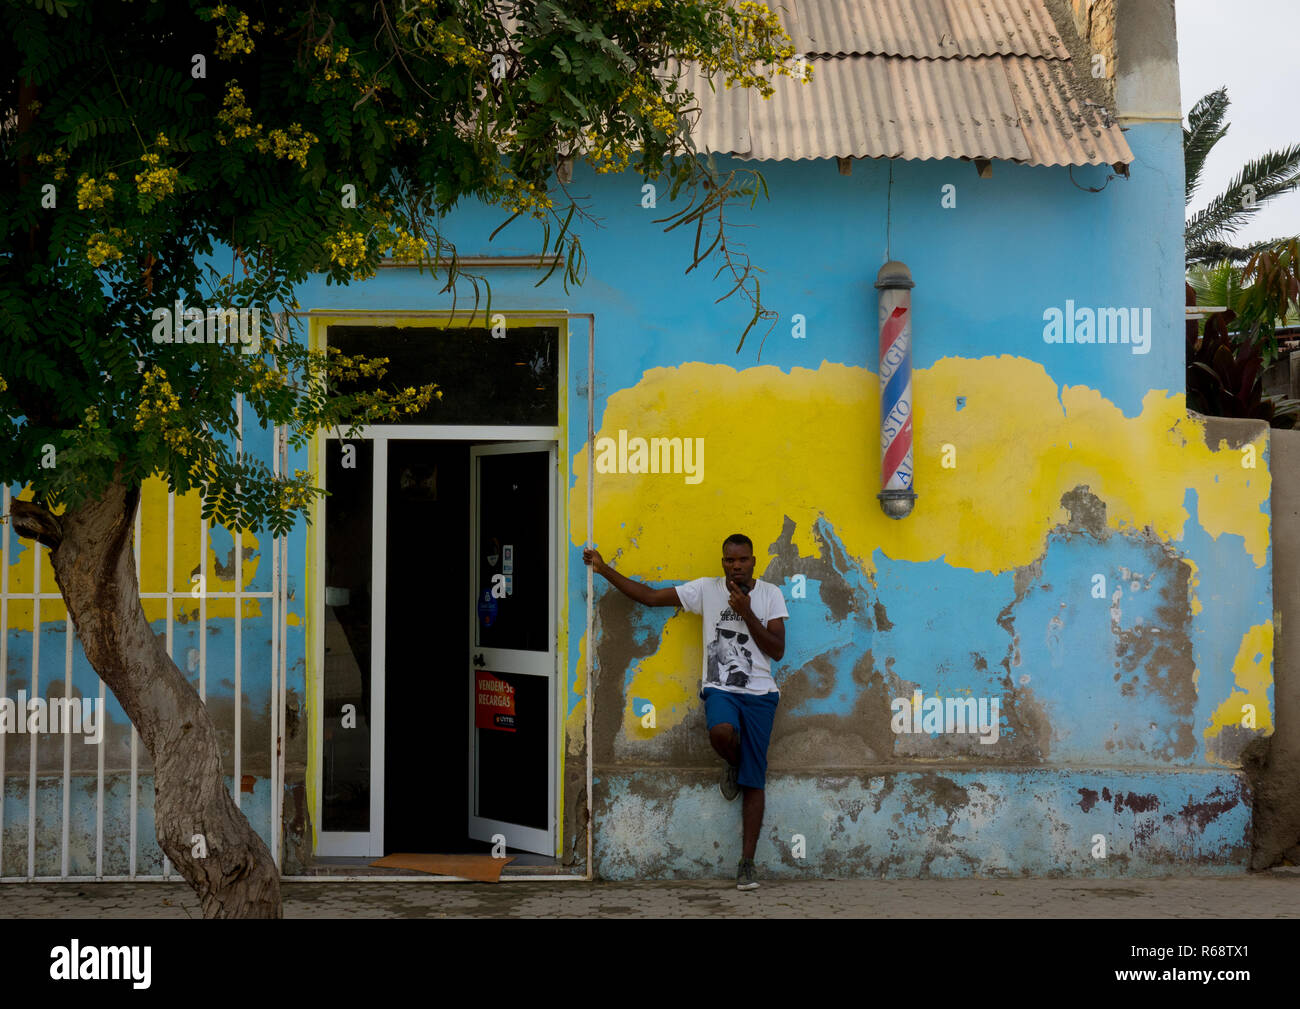 Man standing in front of a barber shop, Benguela Province, Benguela, Angola - Stock Image